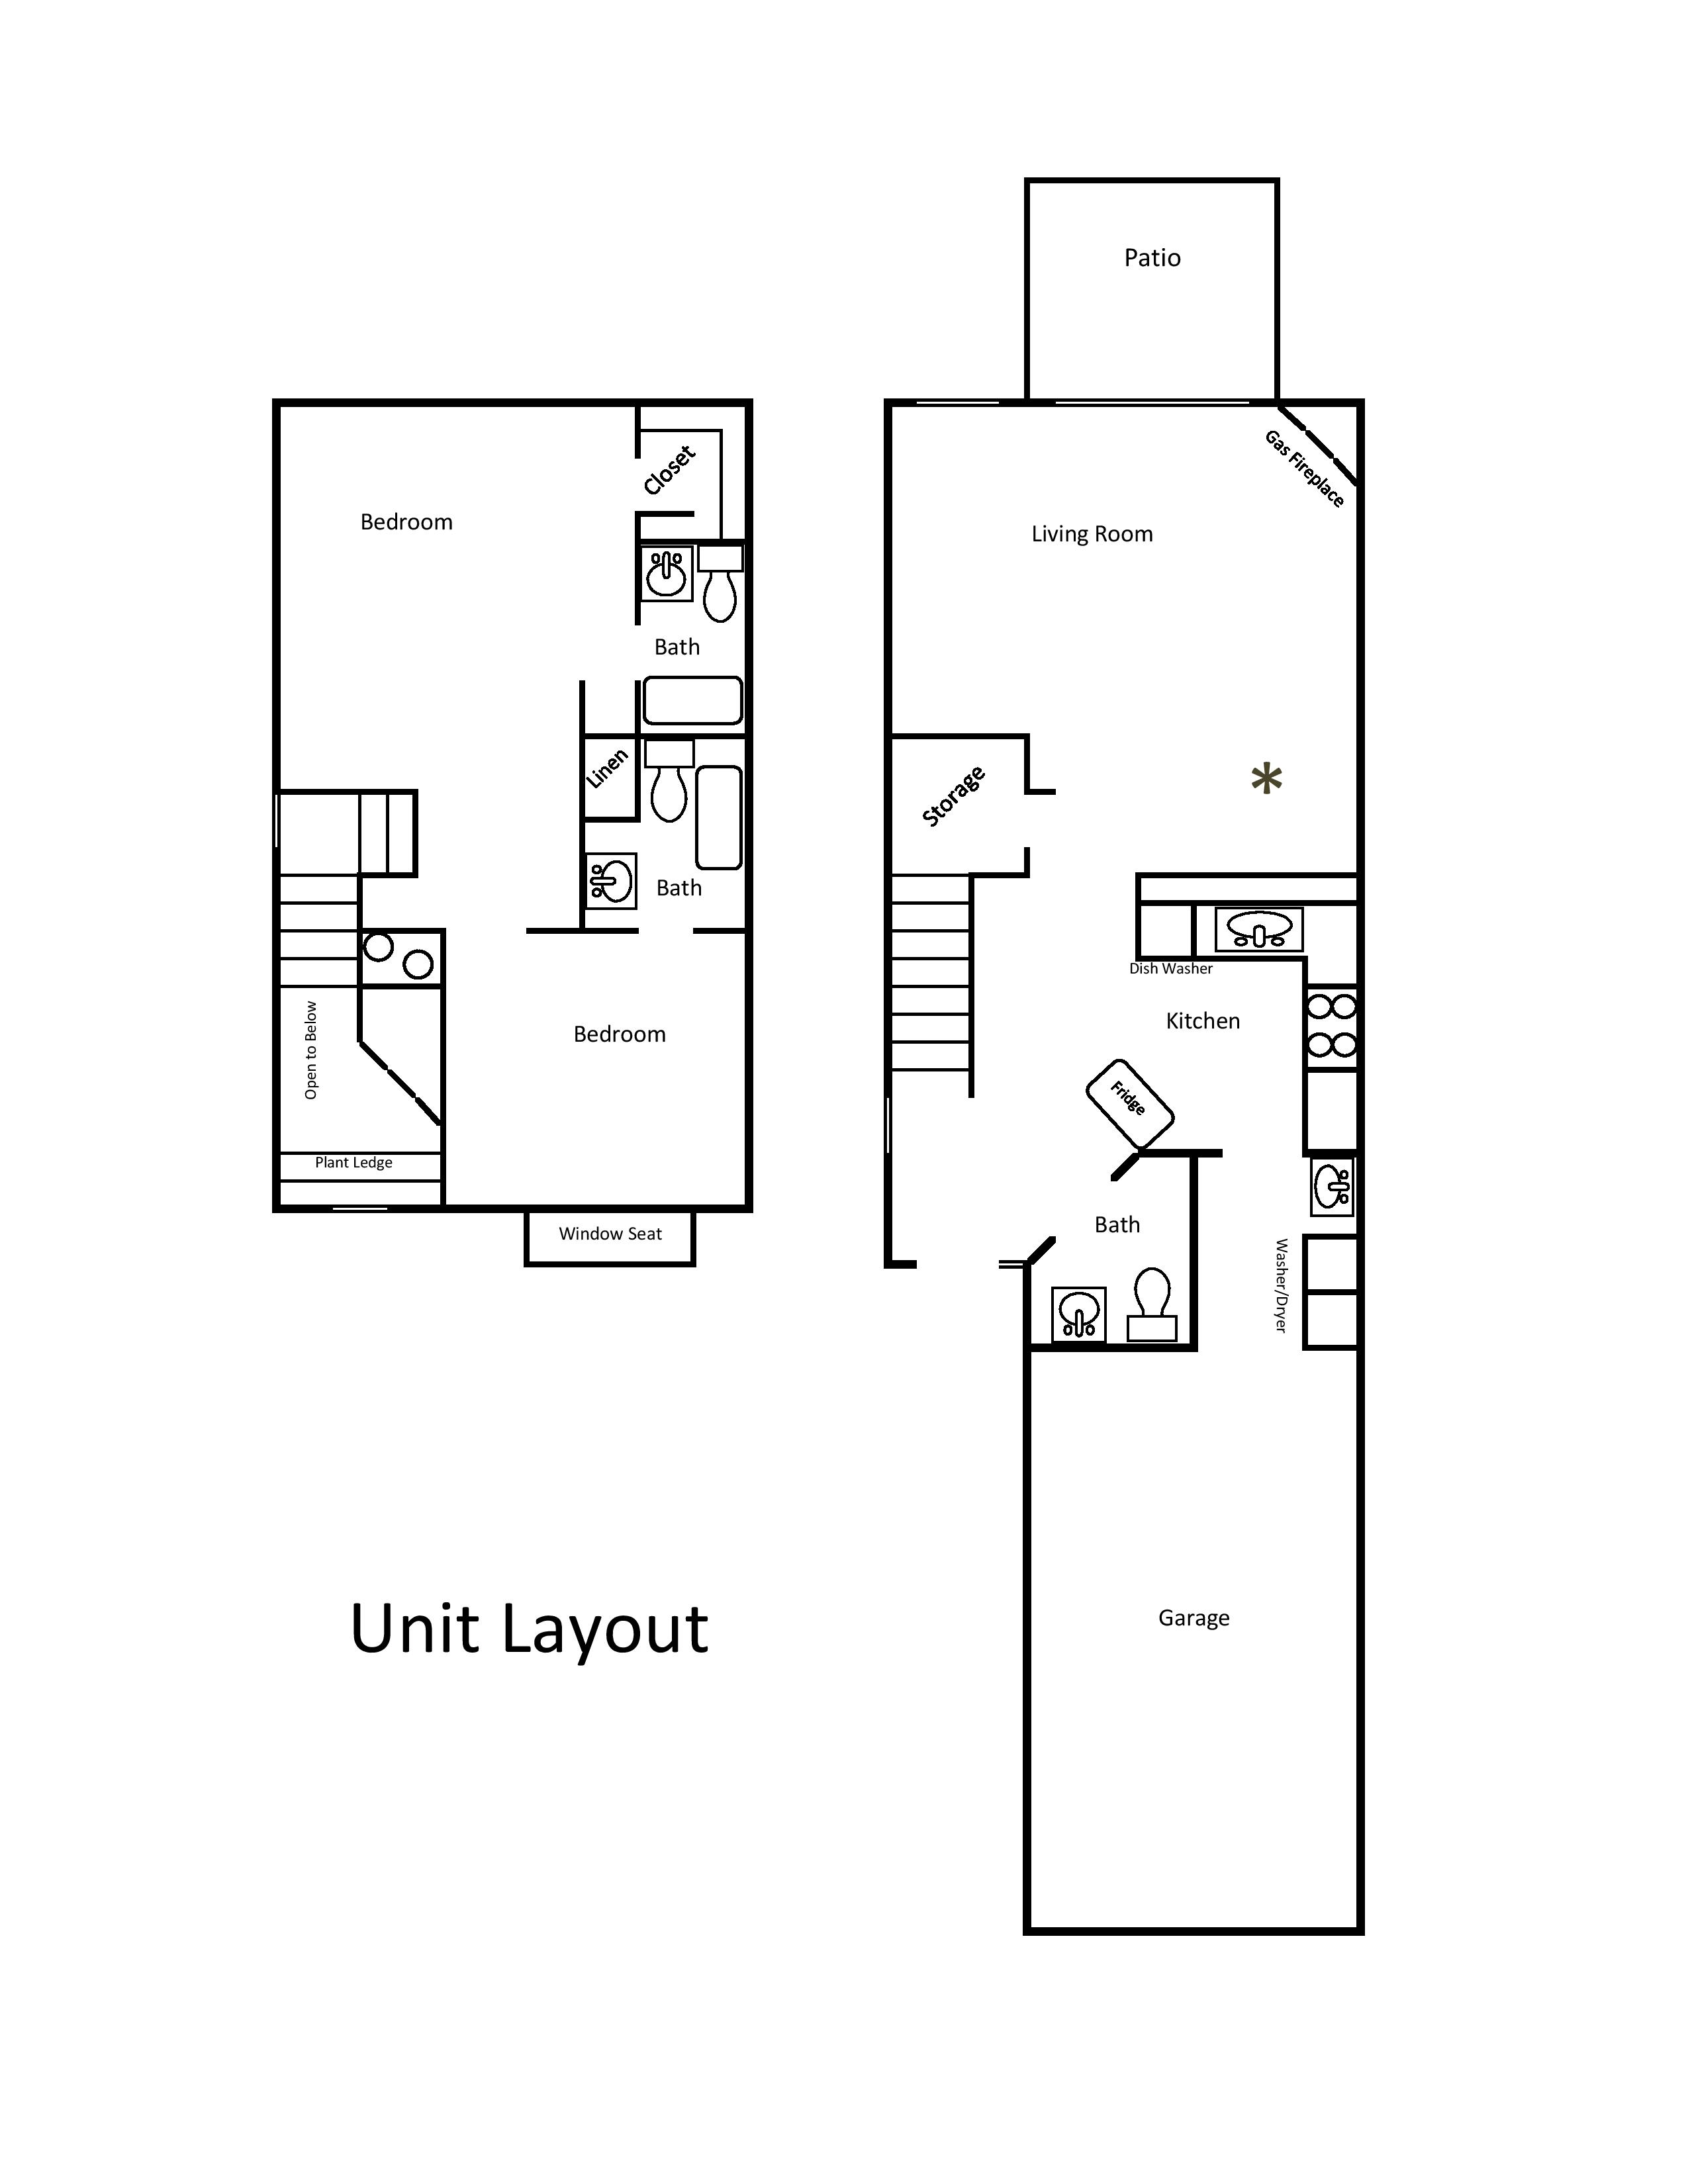 Townhome layout townhouse apartments redding for Townhome layouts